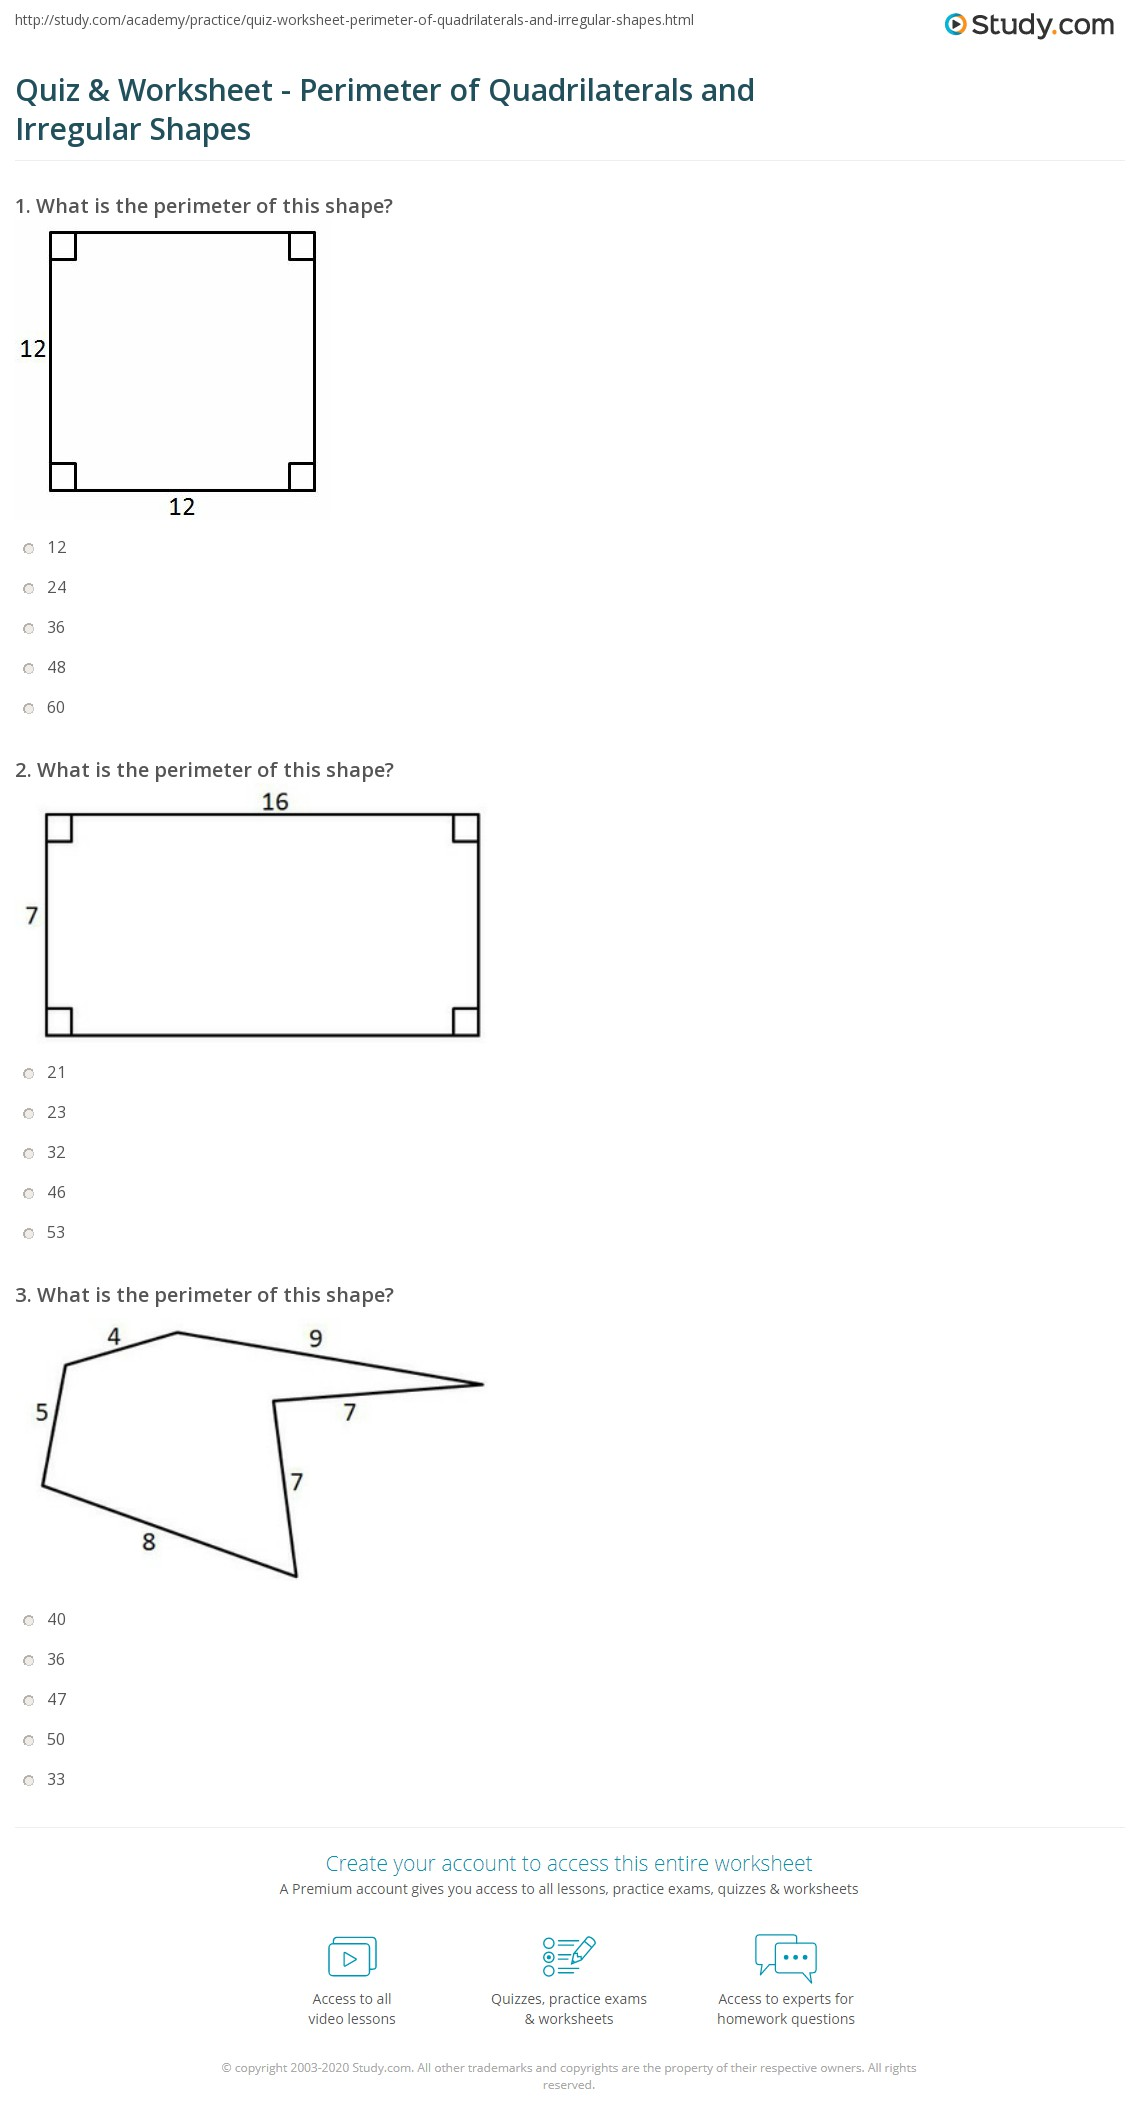 Worksheet Quadrilateral Shapes